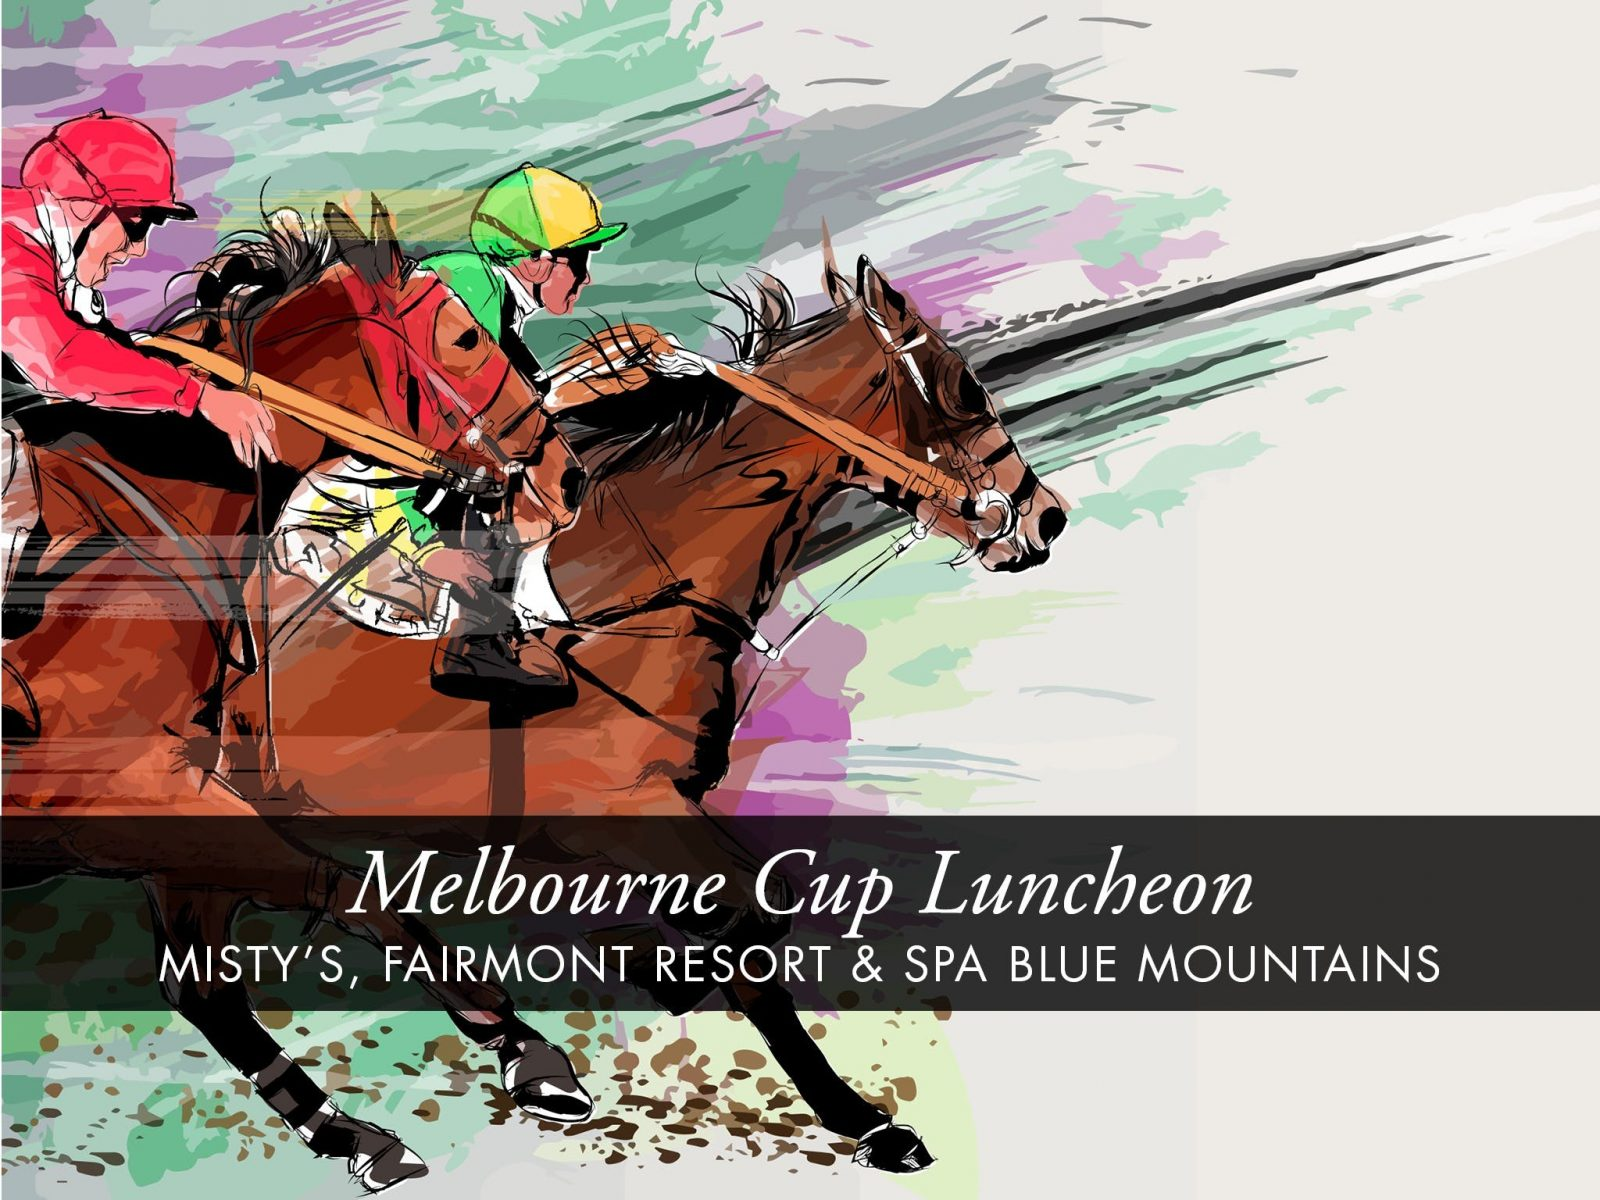 Melbourne Cup Luncheon at Fairmont Resort & Spa Blue Mountains